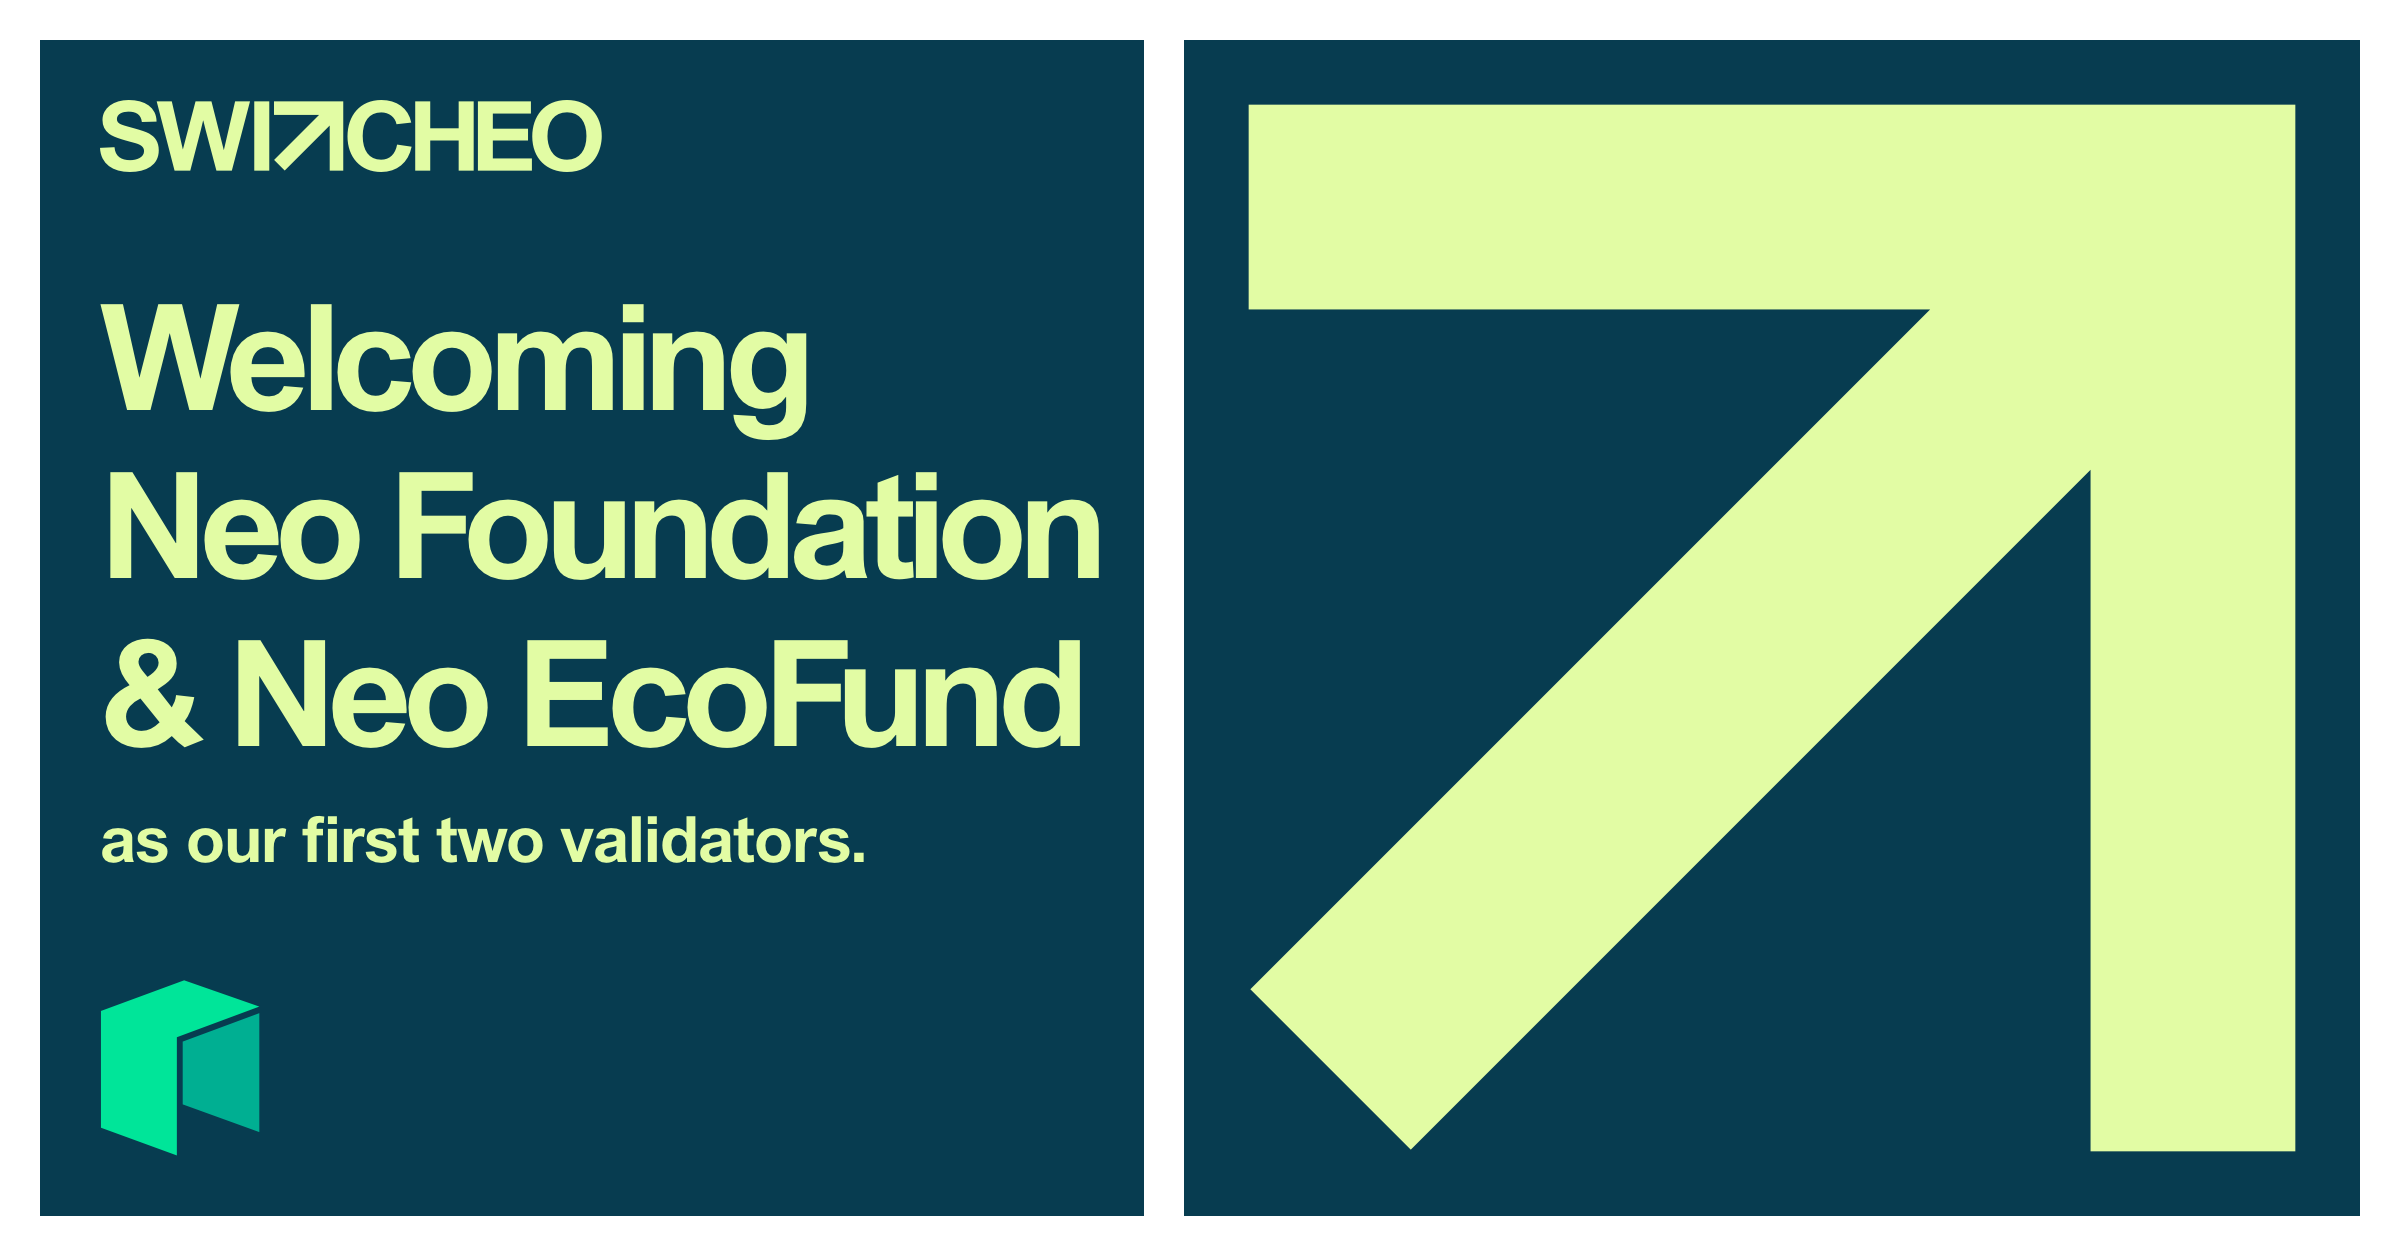 Neo Foundation & Neo EcoFund Supports <bold>Switcheo</bold> TradeHub as Validators